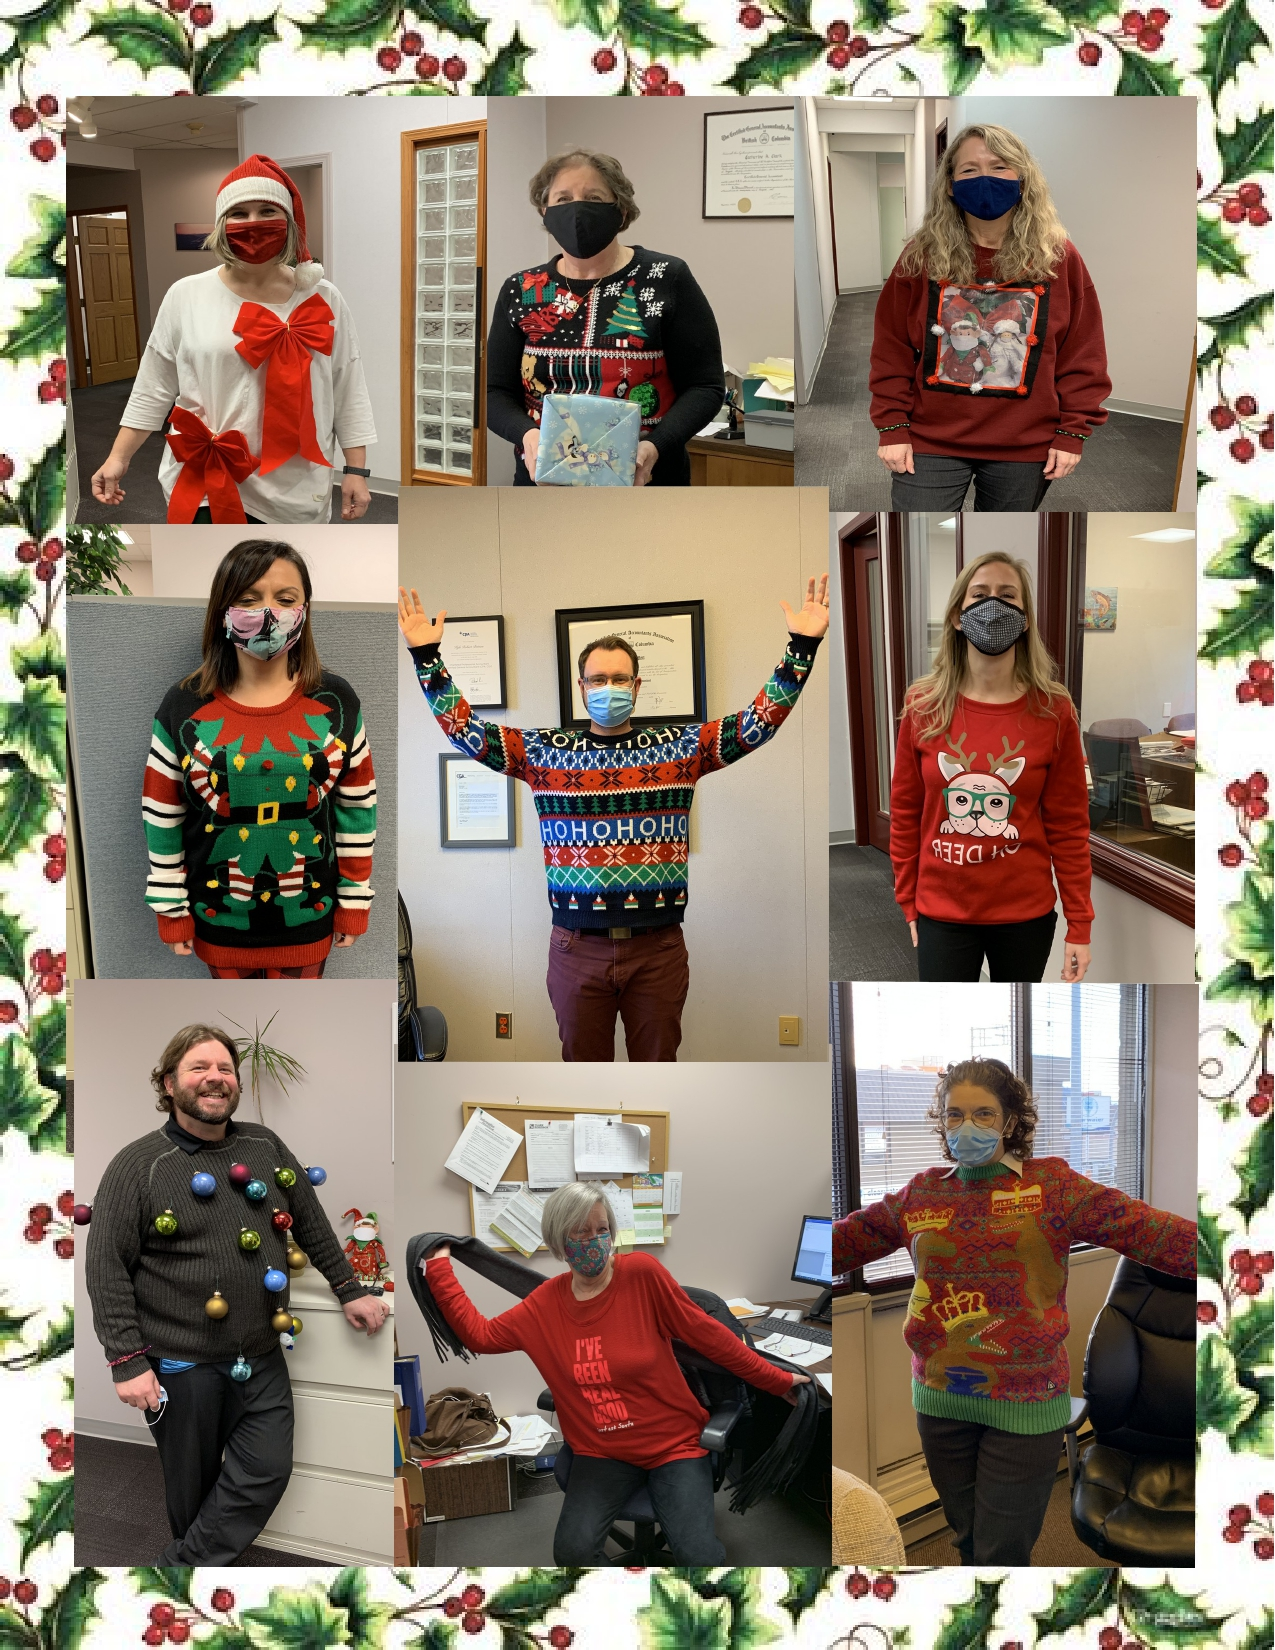 Some ugly sweater fun at the office. Congrats to winners David, for ugliest creation, and Nadia, for being the most festive!